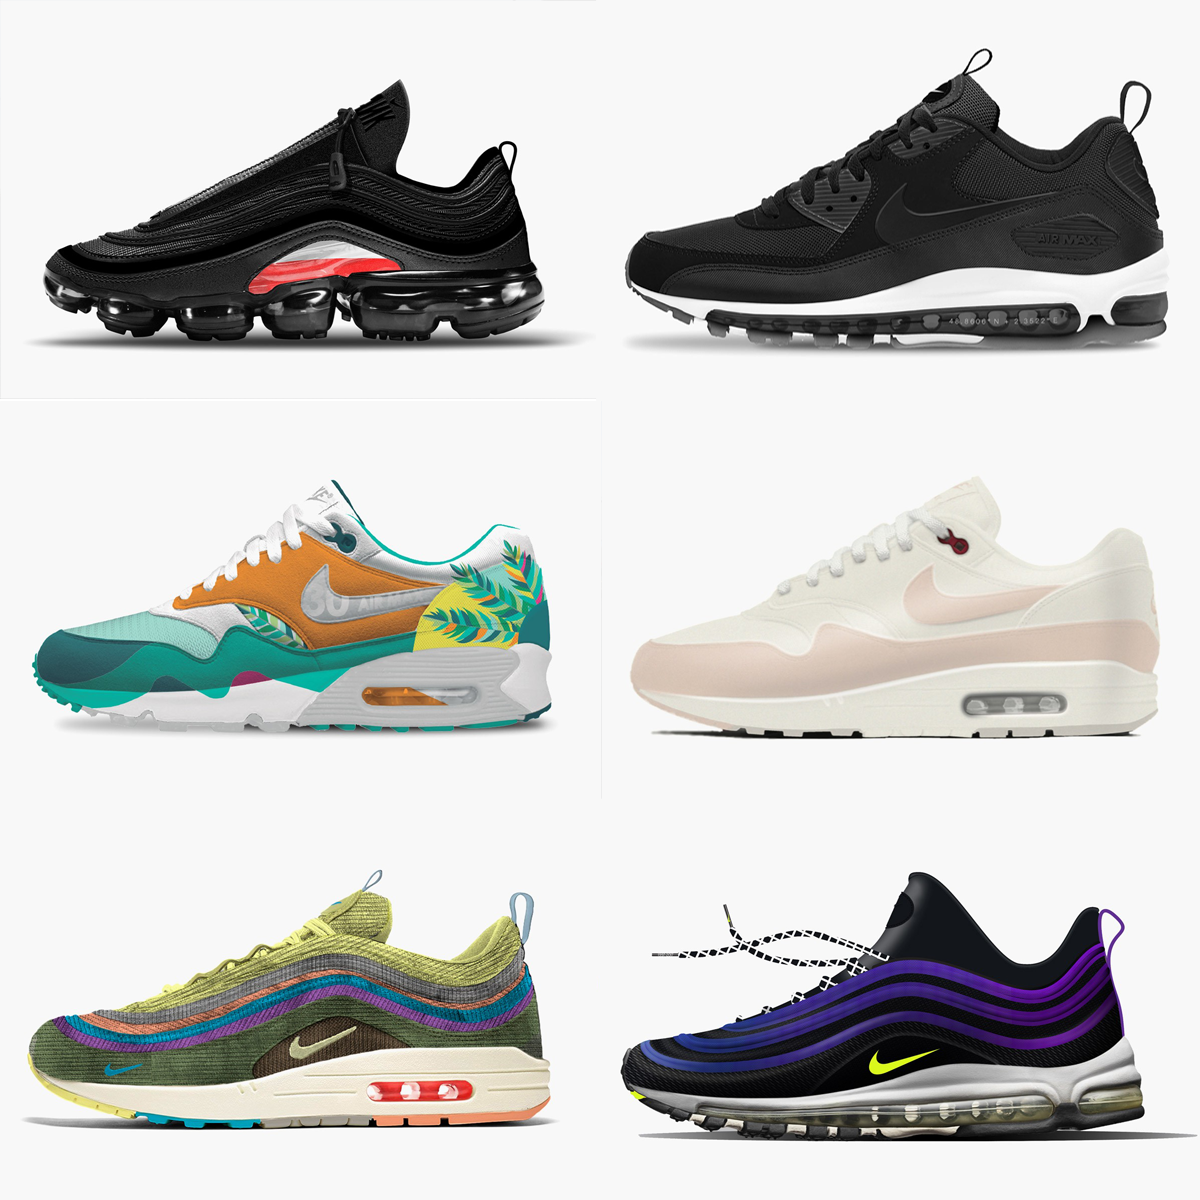 """reputable site 70063 c02d7 ... Nikes """"Vote Forward"""" Campaign For Air Max Day Nike gives 12 designers  the chance Sean Wotherspoons RevolutionAir ..."""